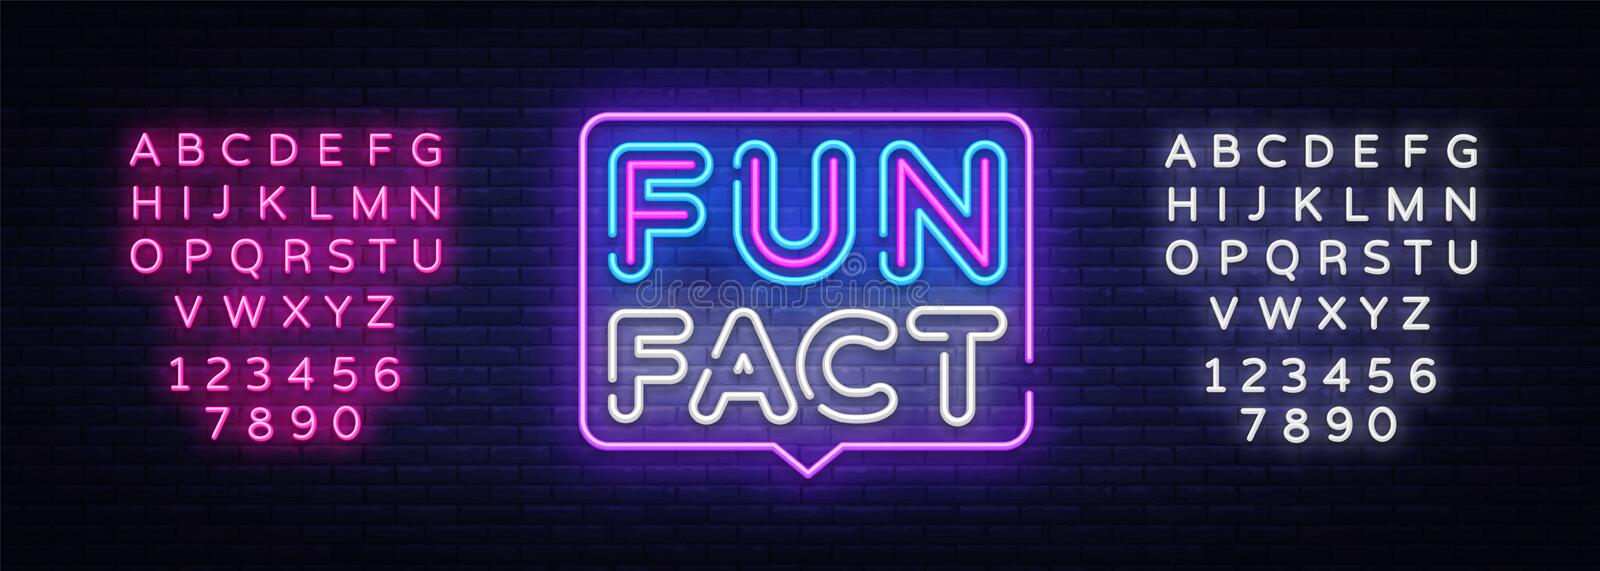 Fun Fact neon sign vector. Facts Design template neon sign, light banner, neon signboard, nightly bright advertising stock illustration